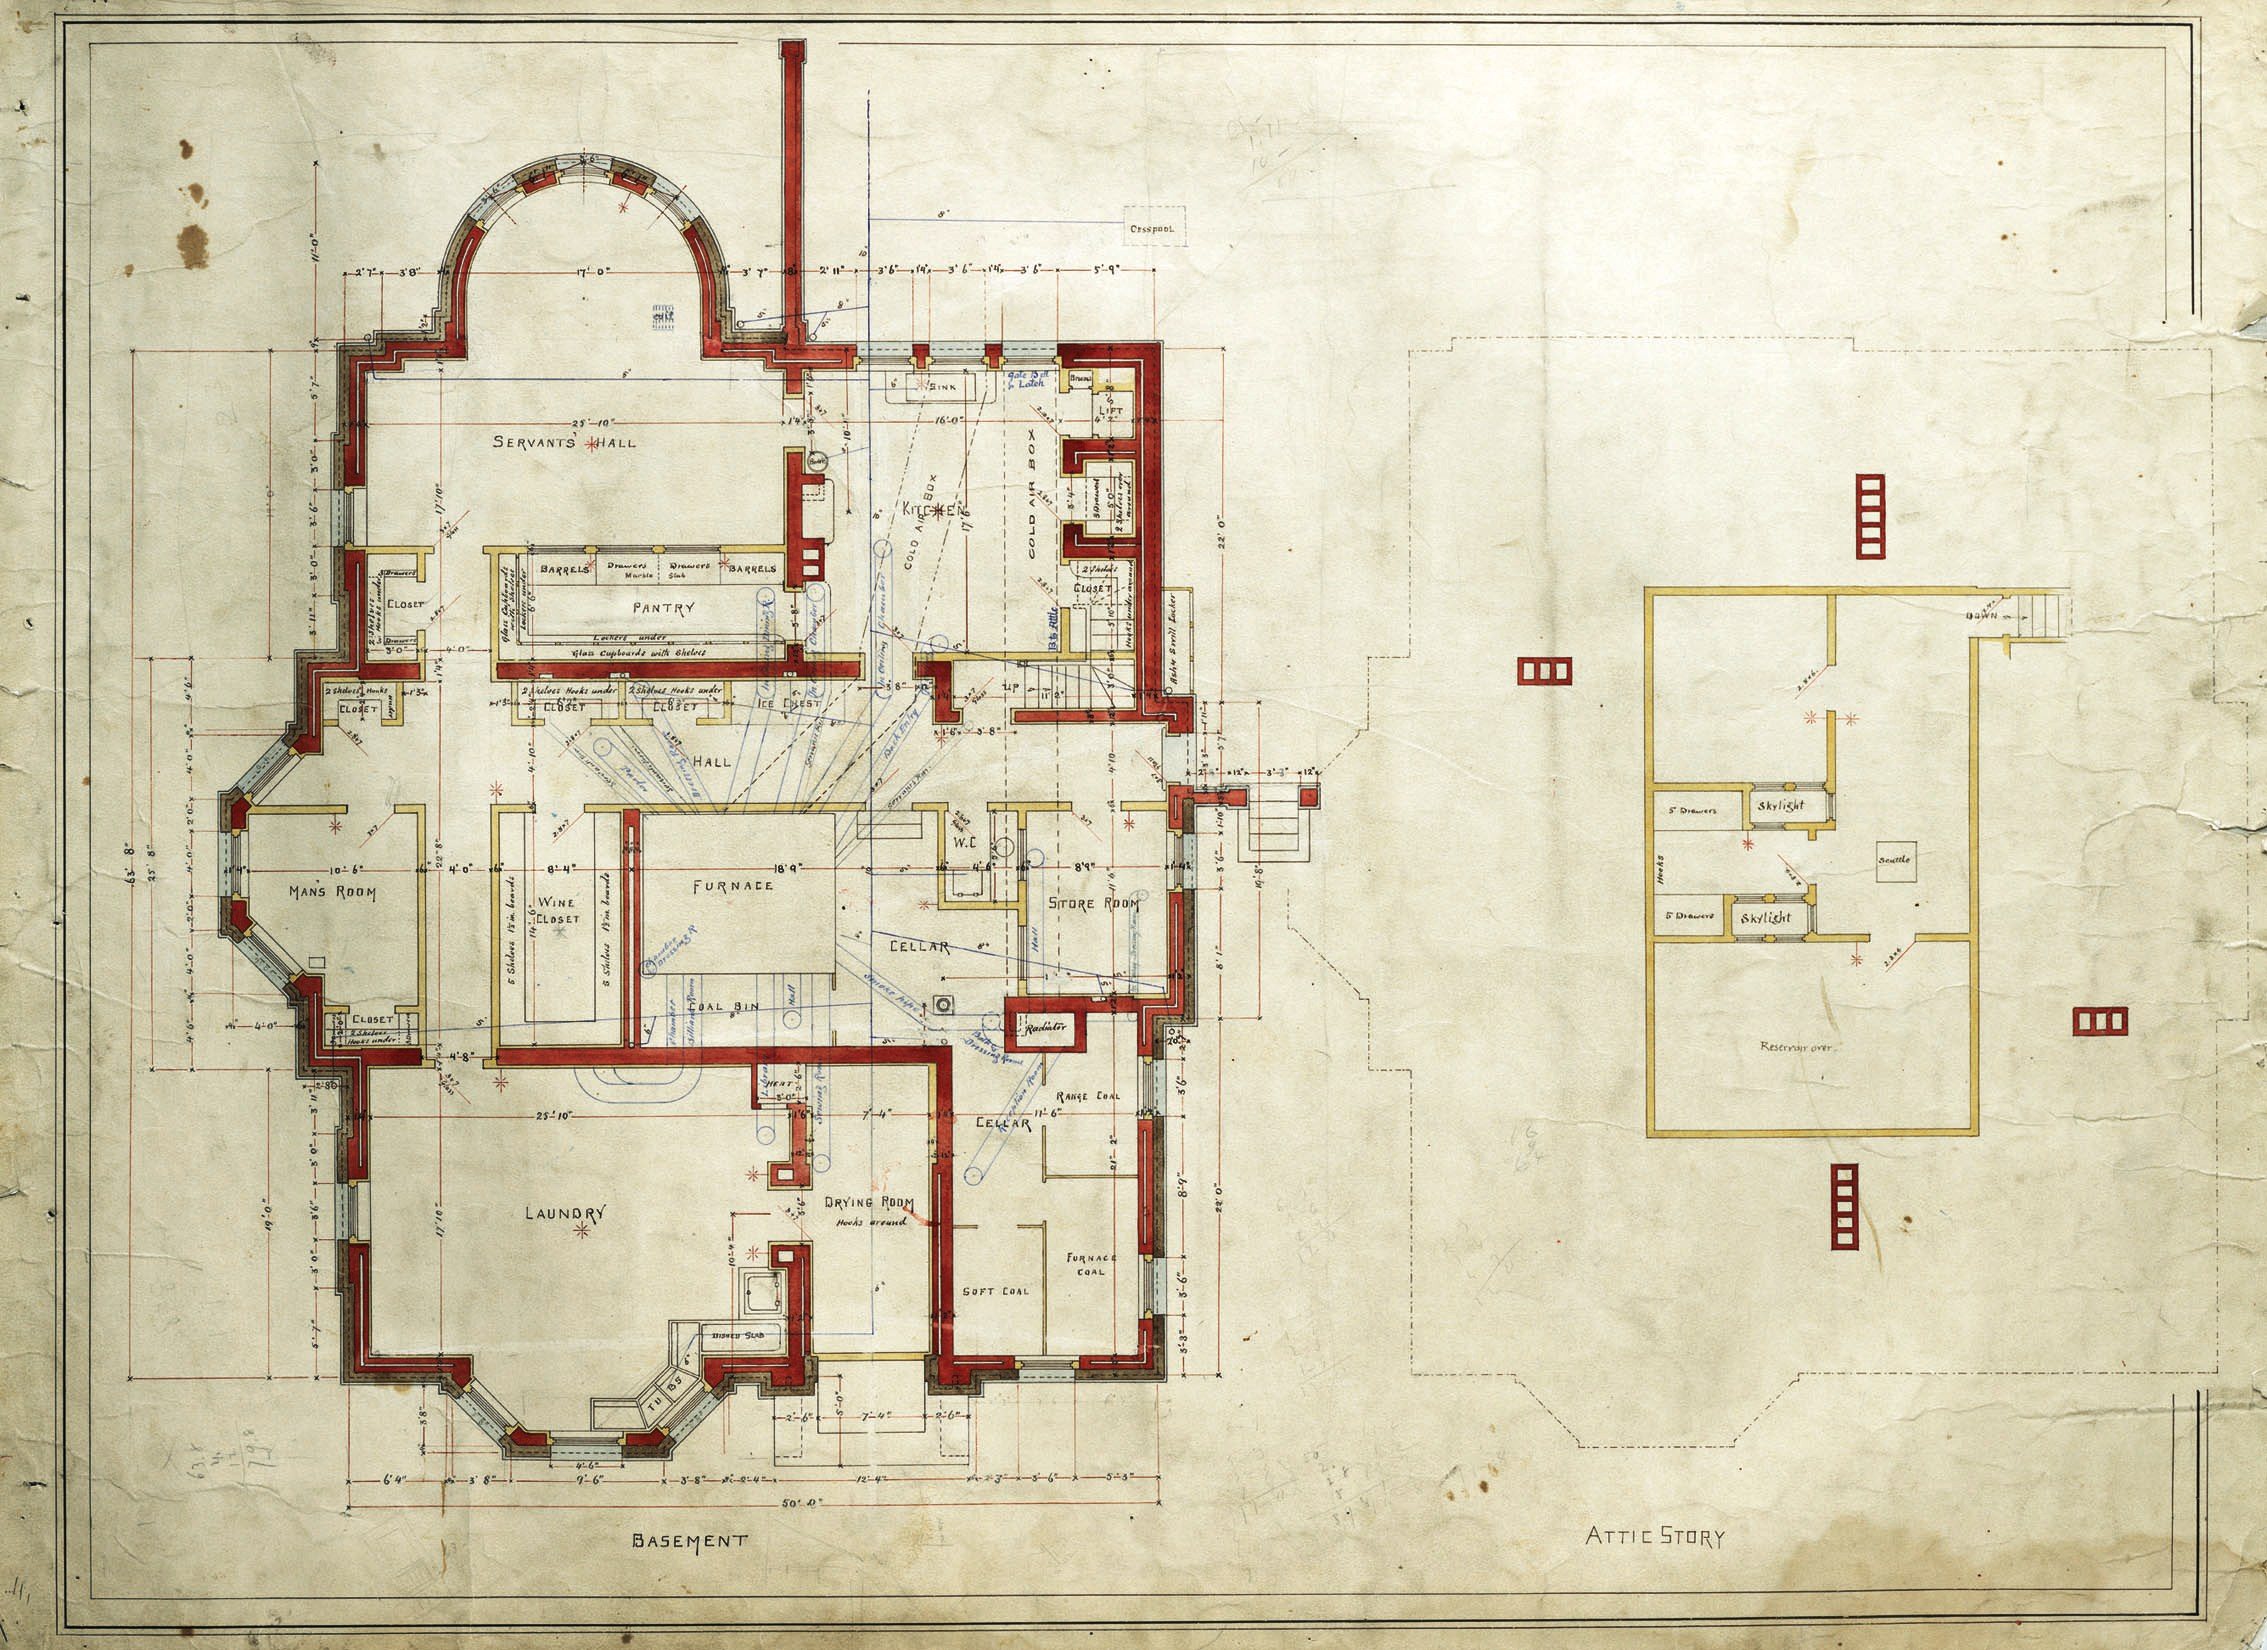 Architectural plans 306 dartmouth 1871 back bay houses for Dartmouth floor plans